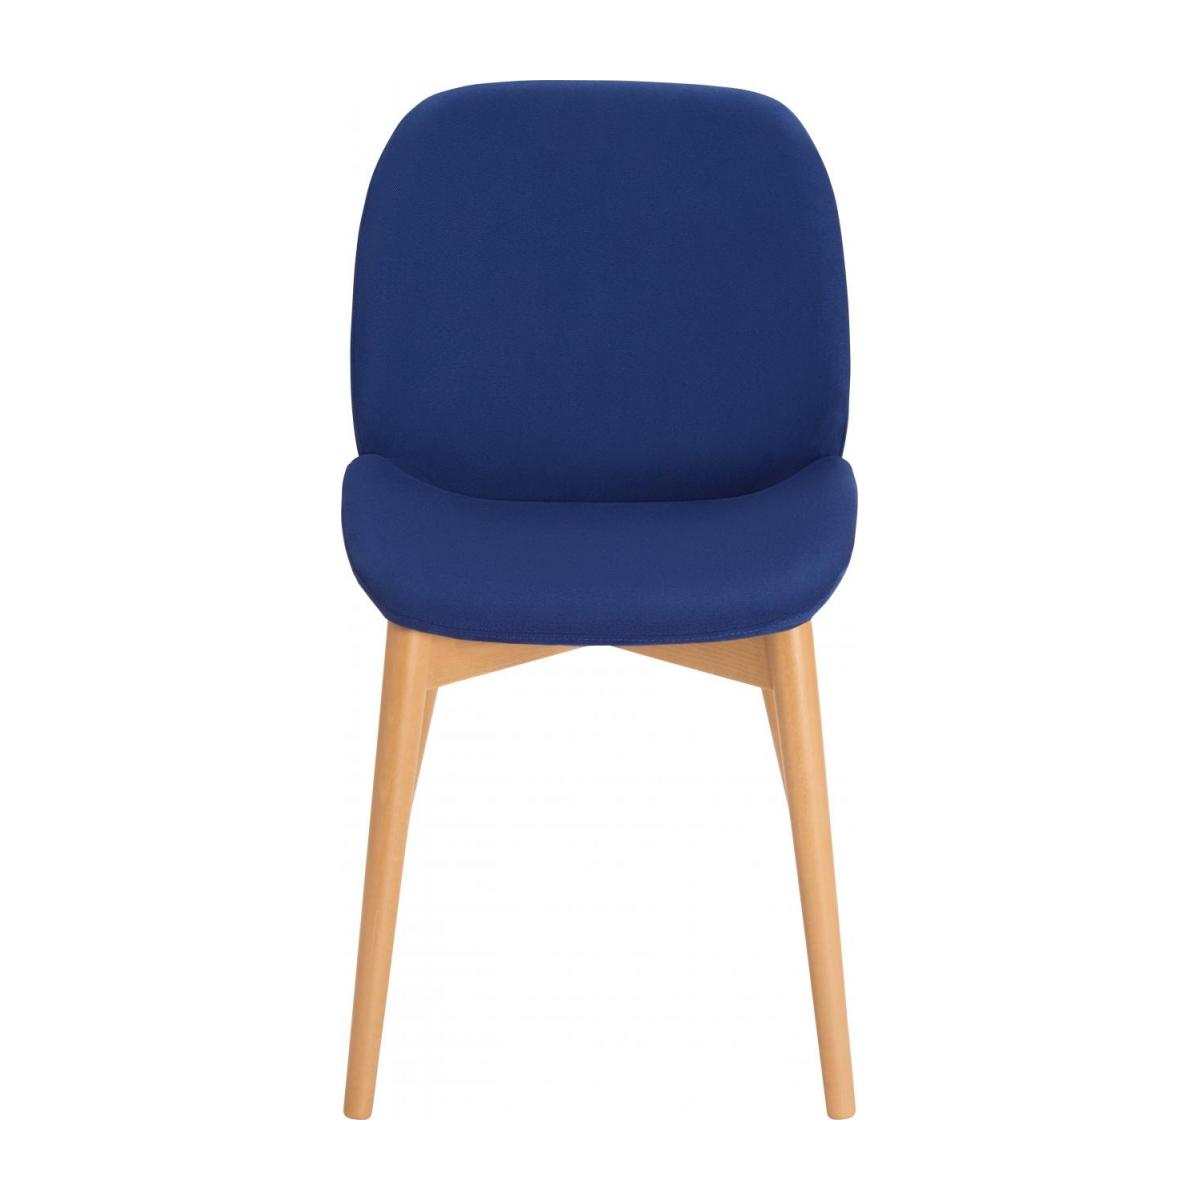 Chair with blue fabric cover and beech wood legs n°2